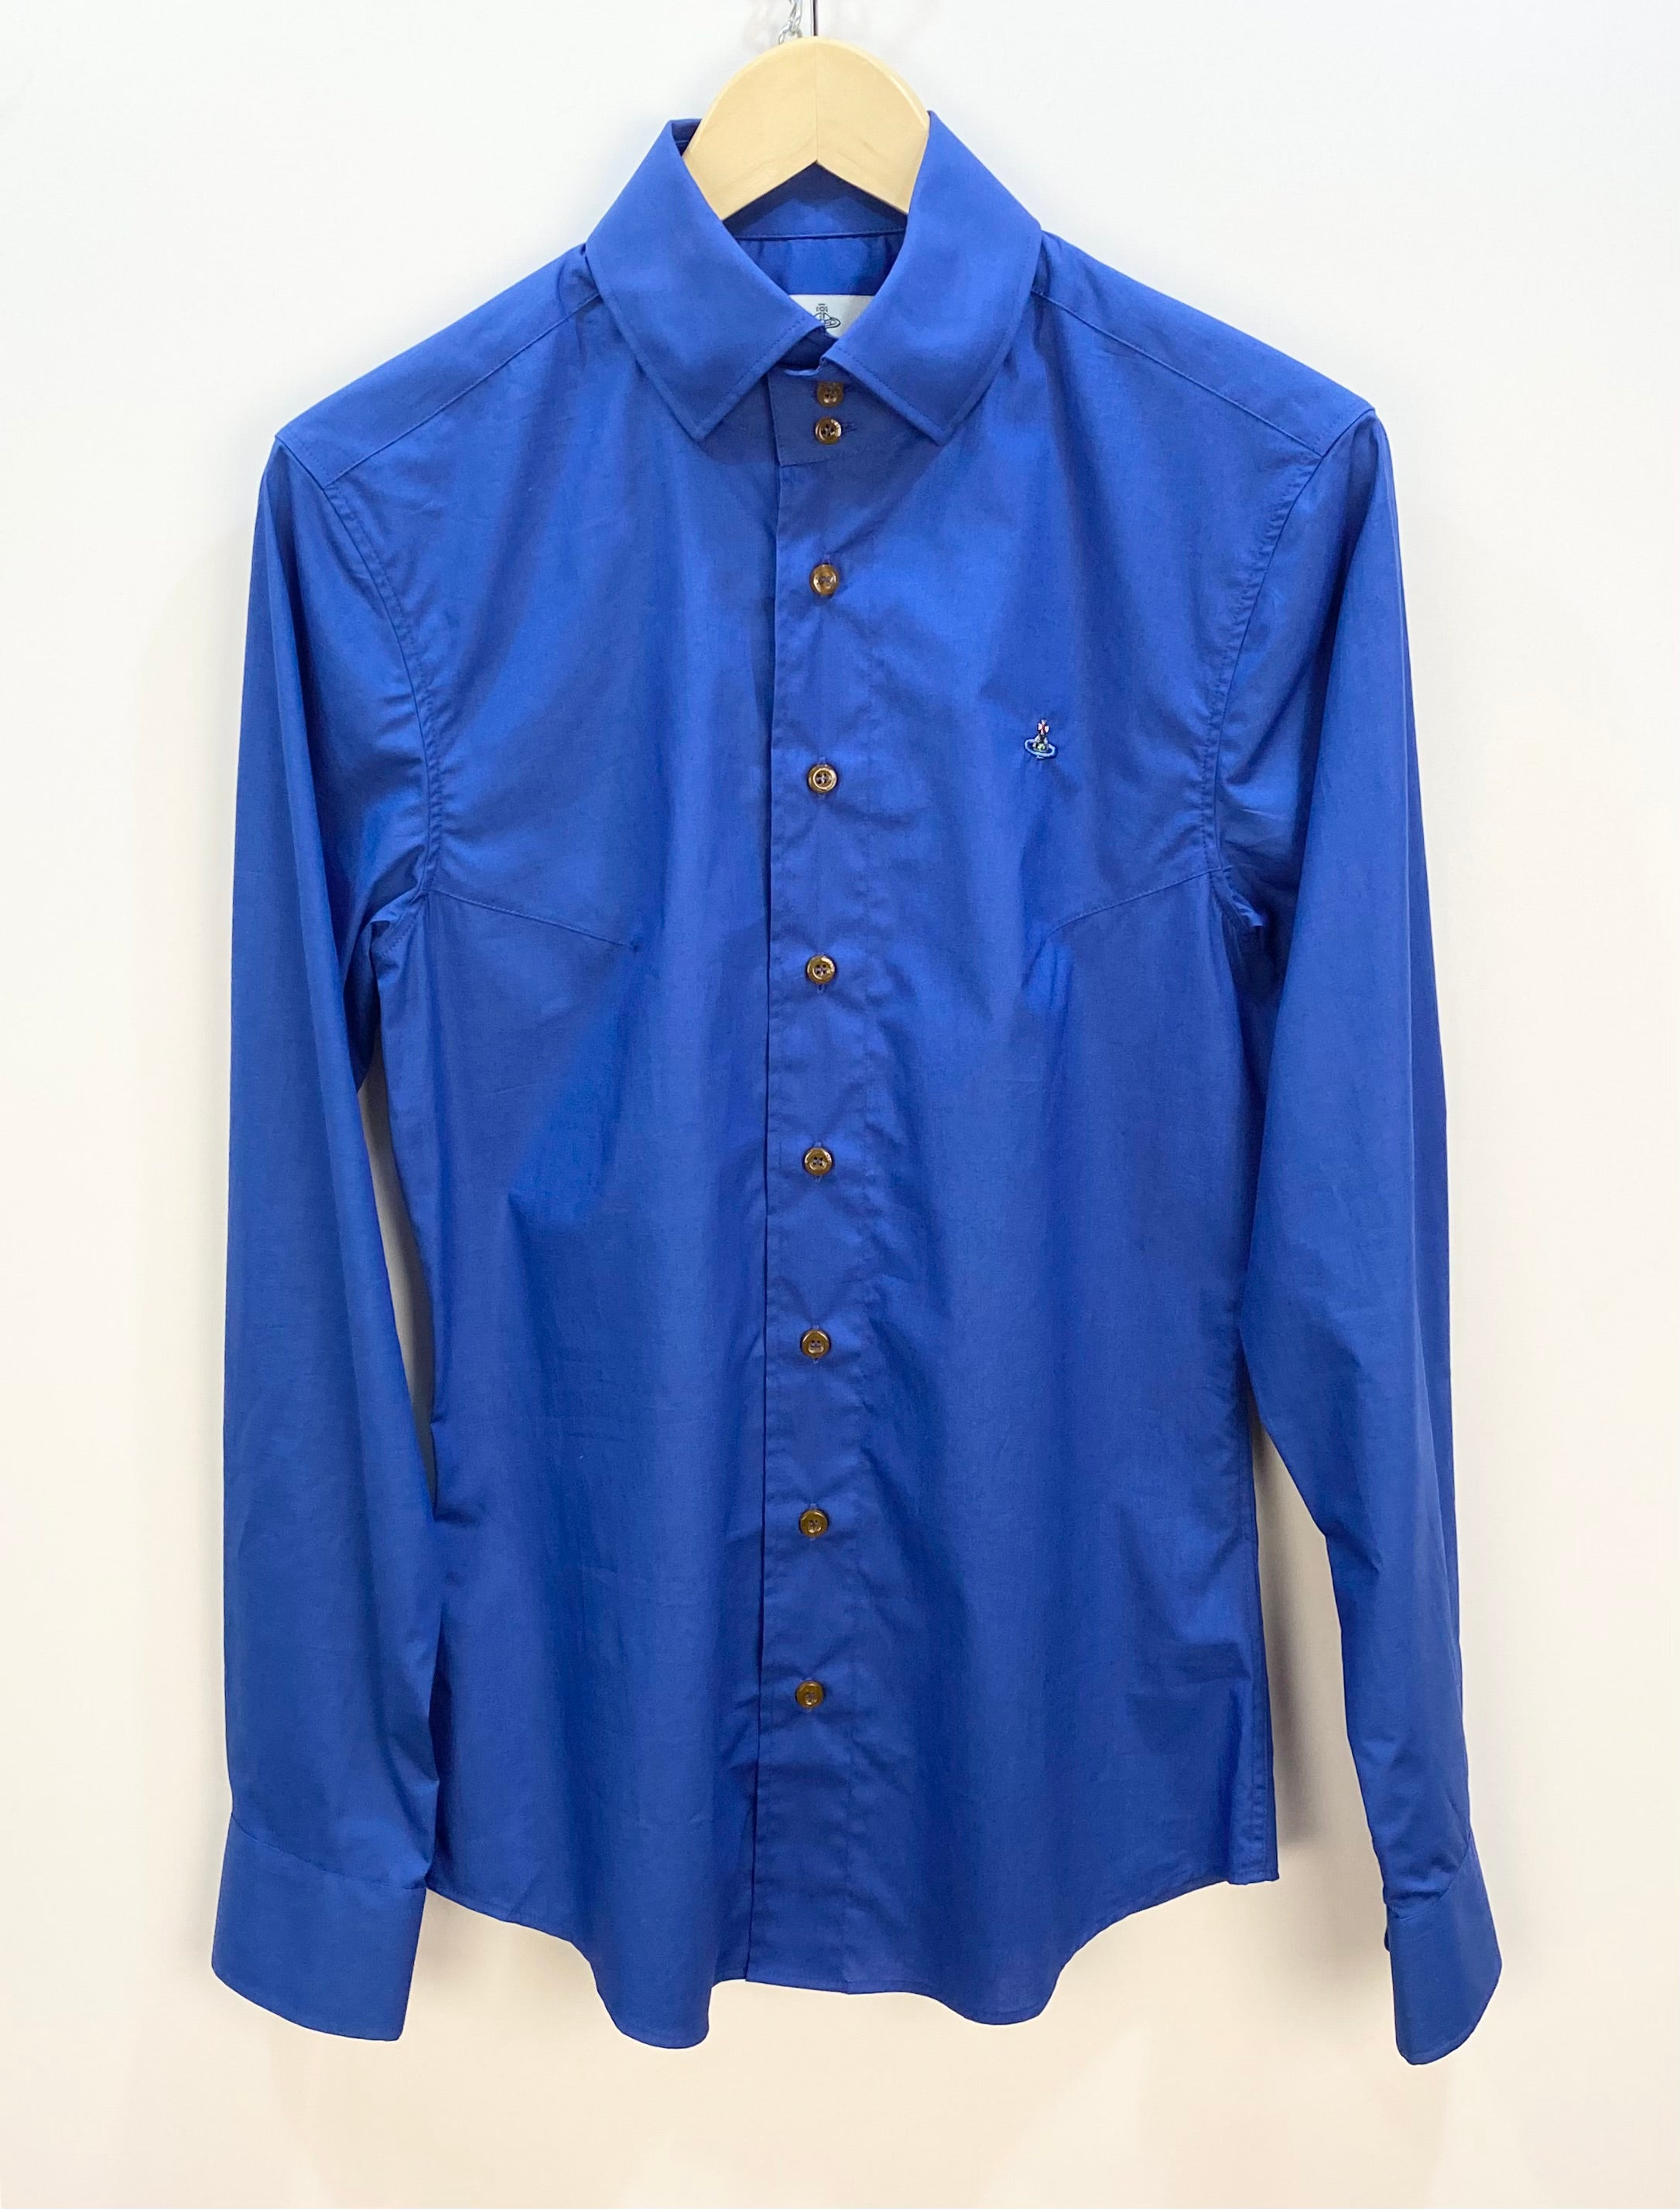 Vivienne Westwood 3 Button Collar Long Sleeve Shirt Royal Blue